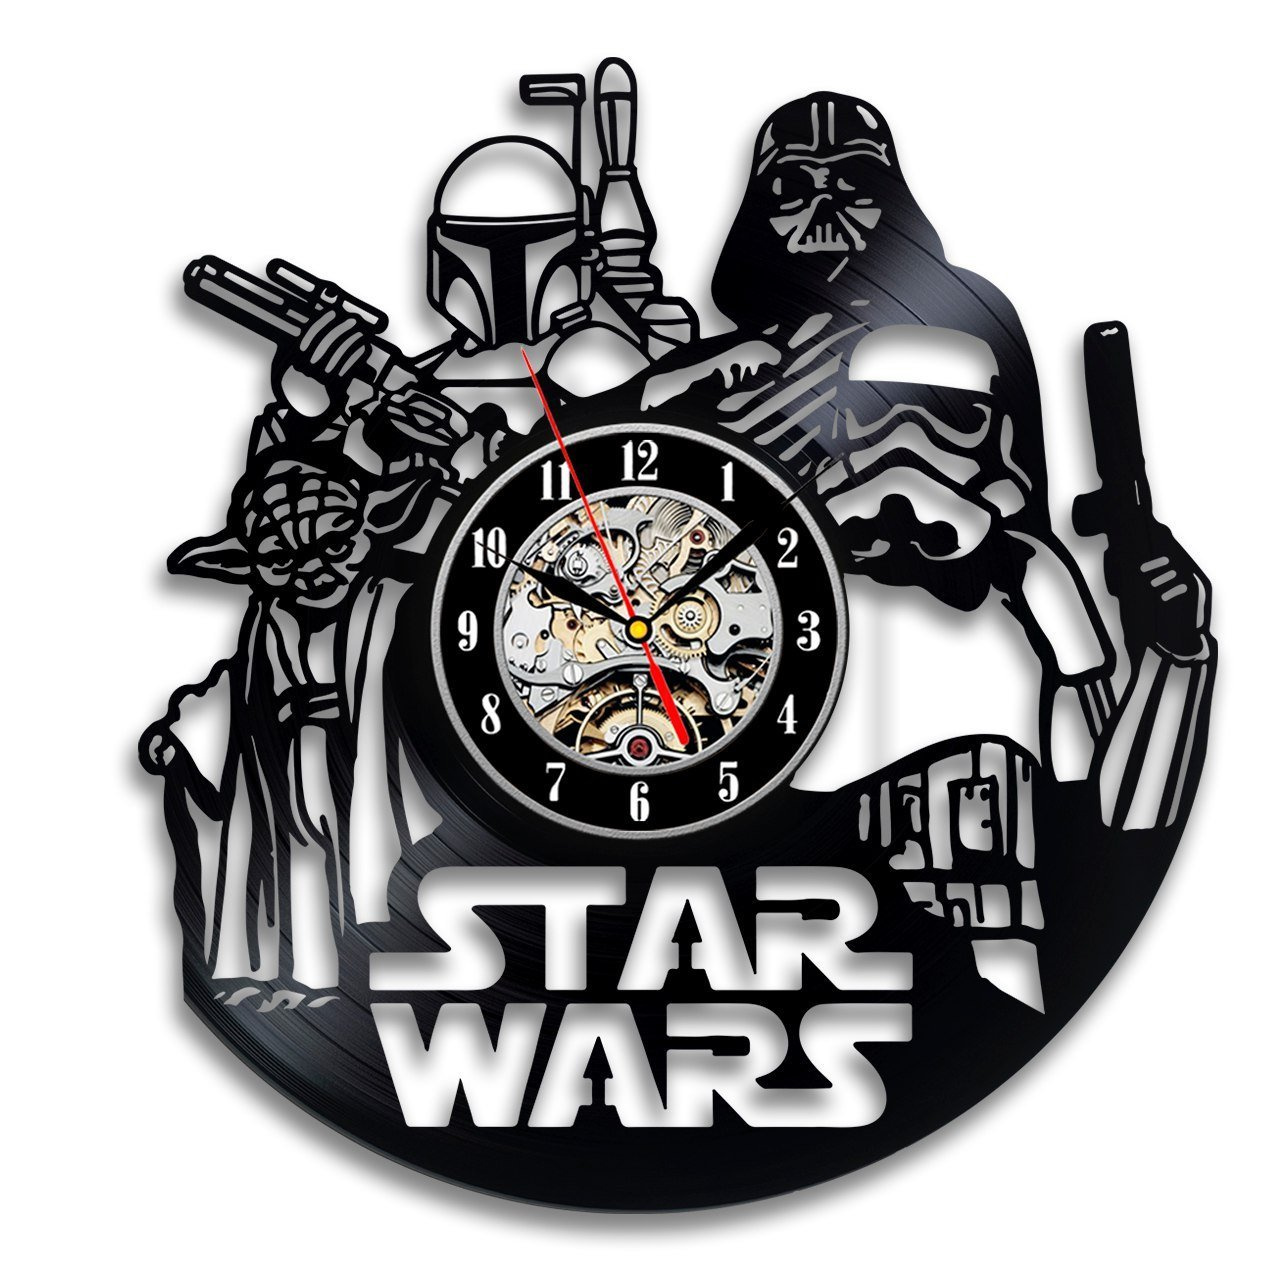 Star Wars Force Awakens Finn Rey Han Solo Vinyl Record Clock Room Wall Art Vinyl Evolution VE979